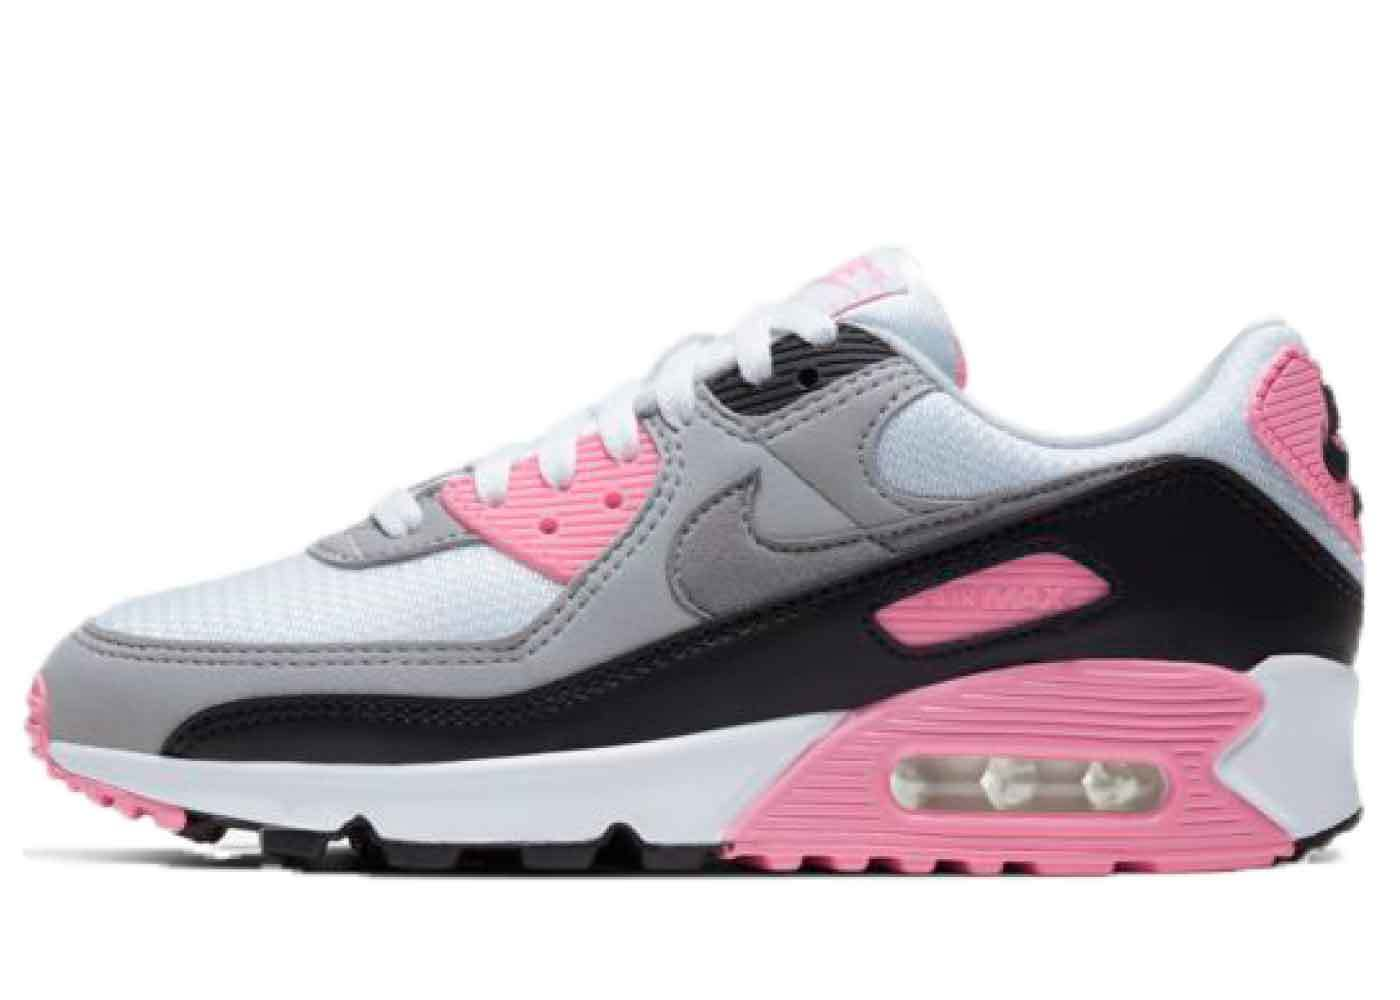 Nike Air Max 90 White/Particle Grey-Pink-Black Womensの写真